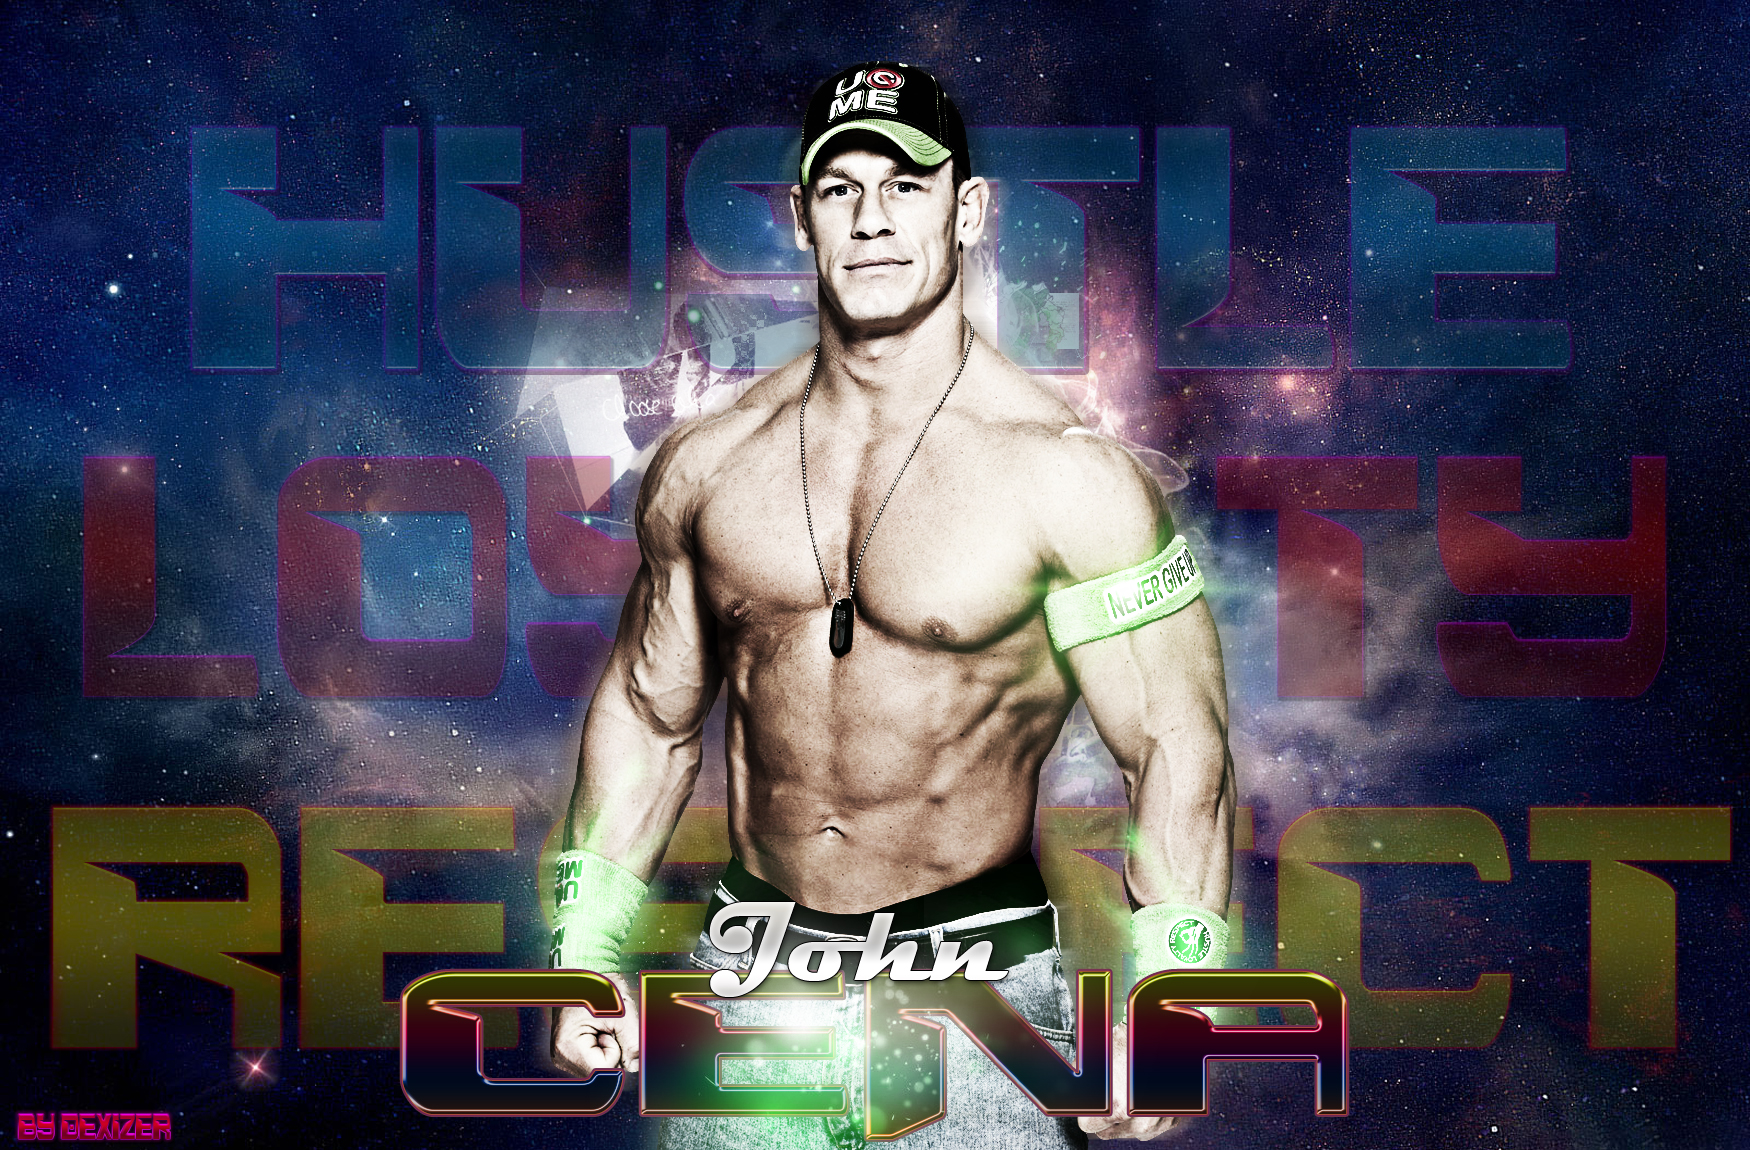 John Cena Wallpapers Pictures Images 1750x1150